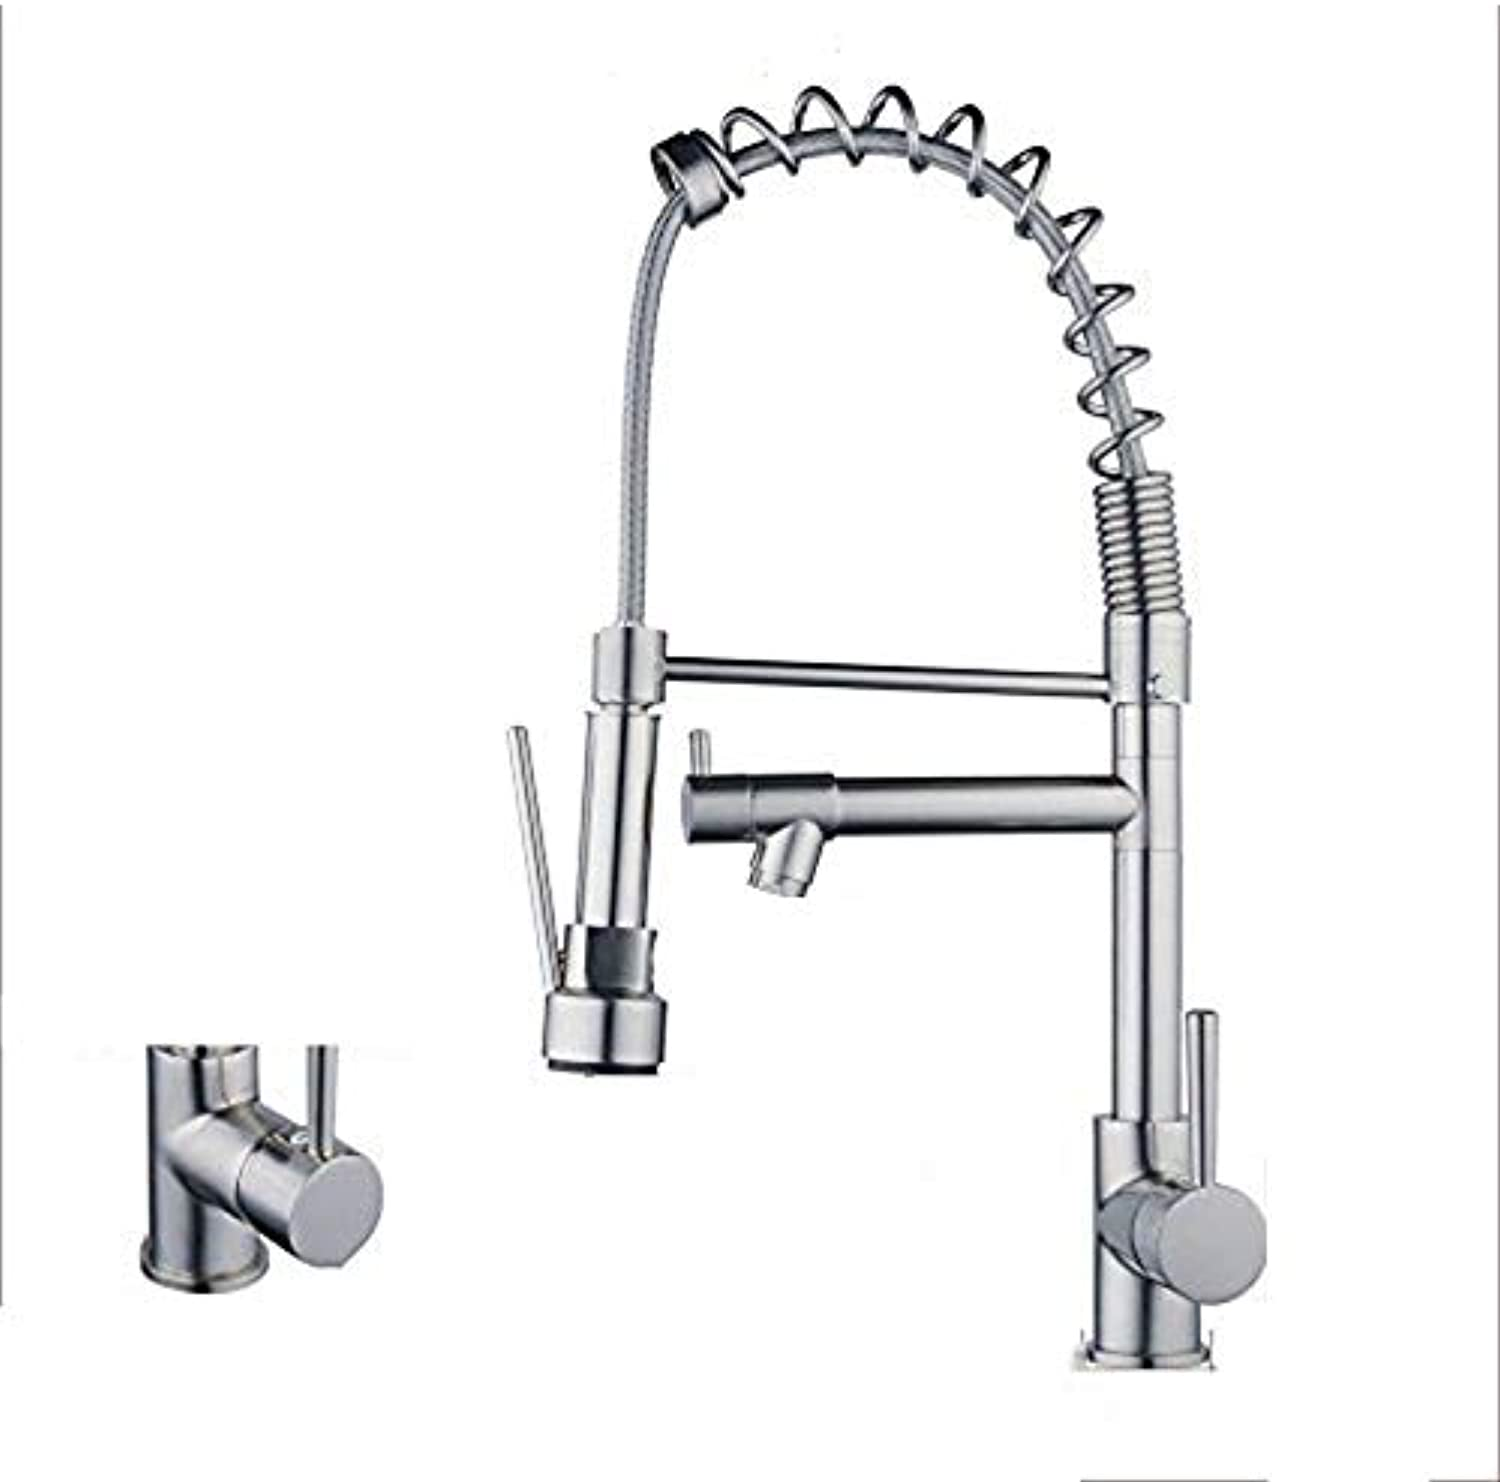 ZFXNB Pull Out Kitchen Faucet, Polished Chrome Kitchen Sink Mixing Faucet With redating Faucet 360° redating Spout Sink Kitchen Faucet Tap